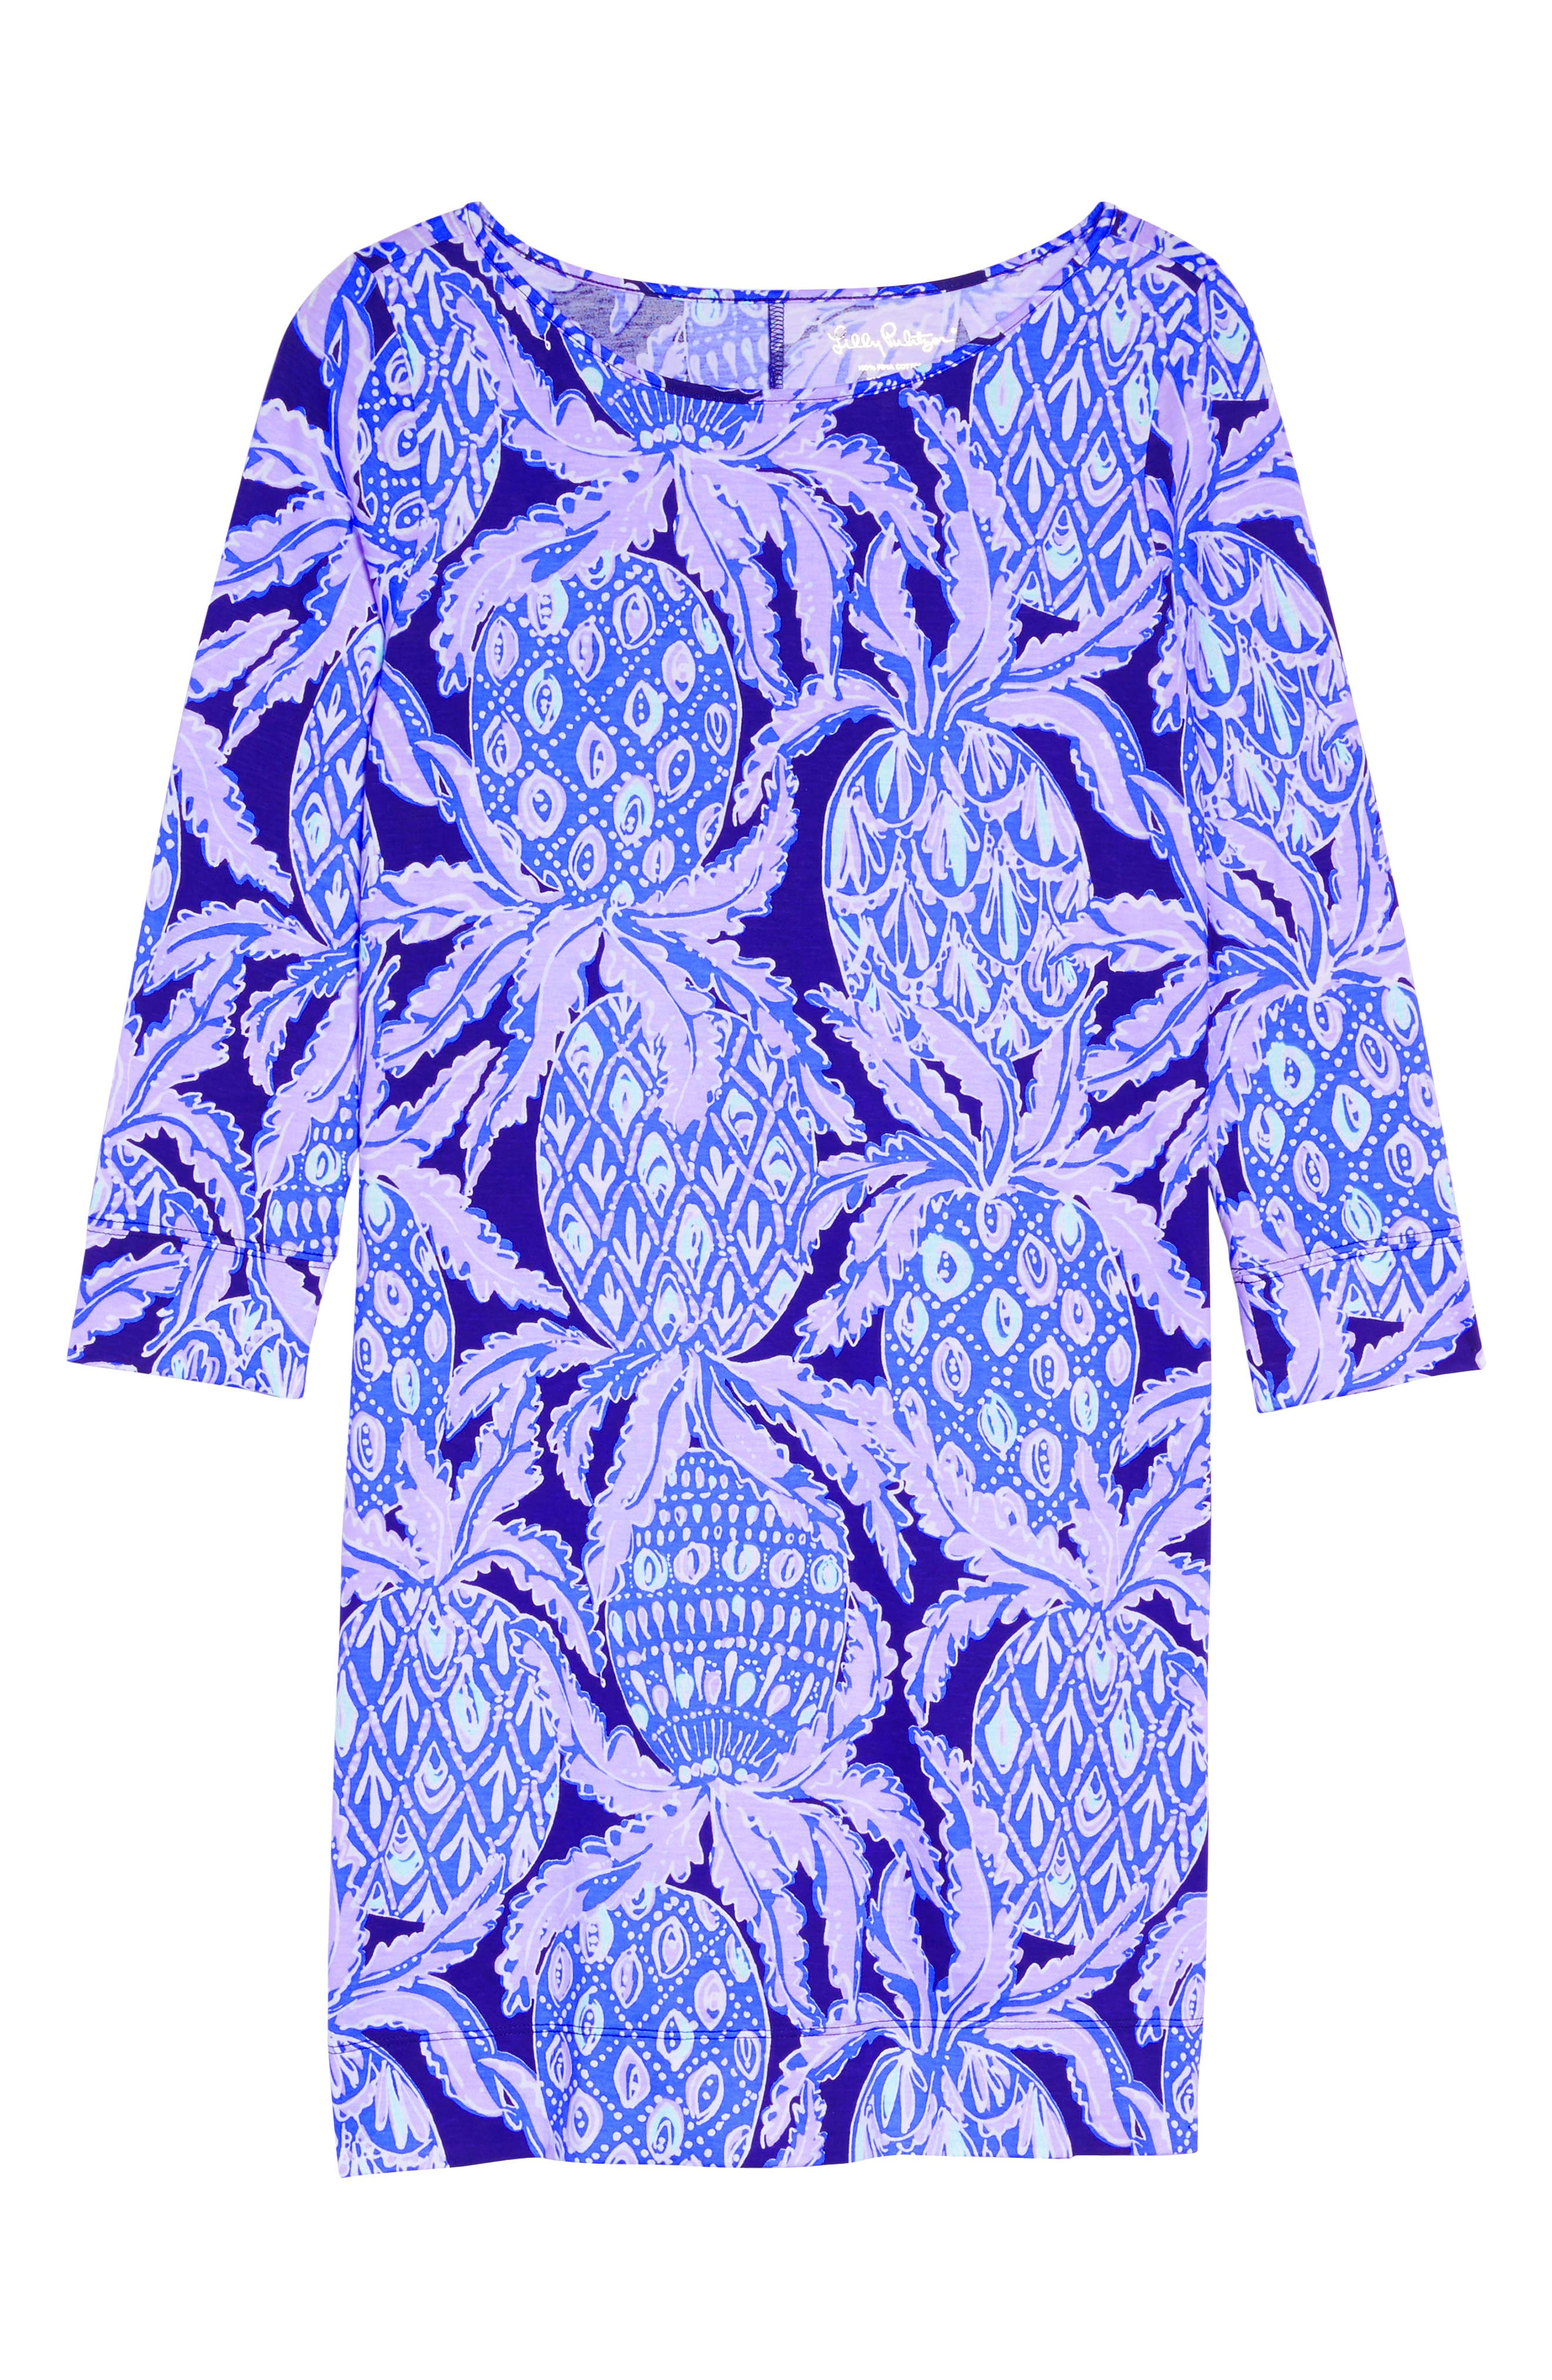 Marlowe Shift Dress,                             Alternate thumbnail 5, color,                             Lilac Verbena Coco Safari